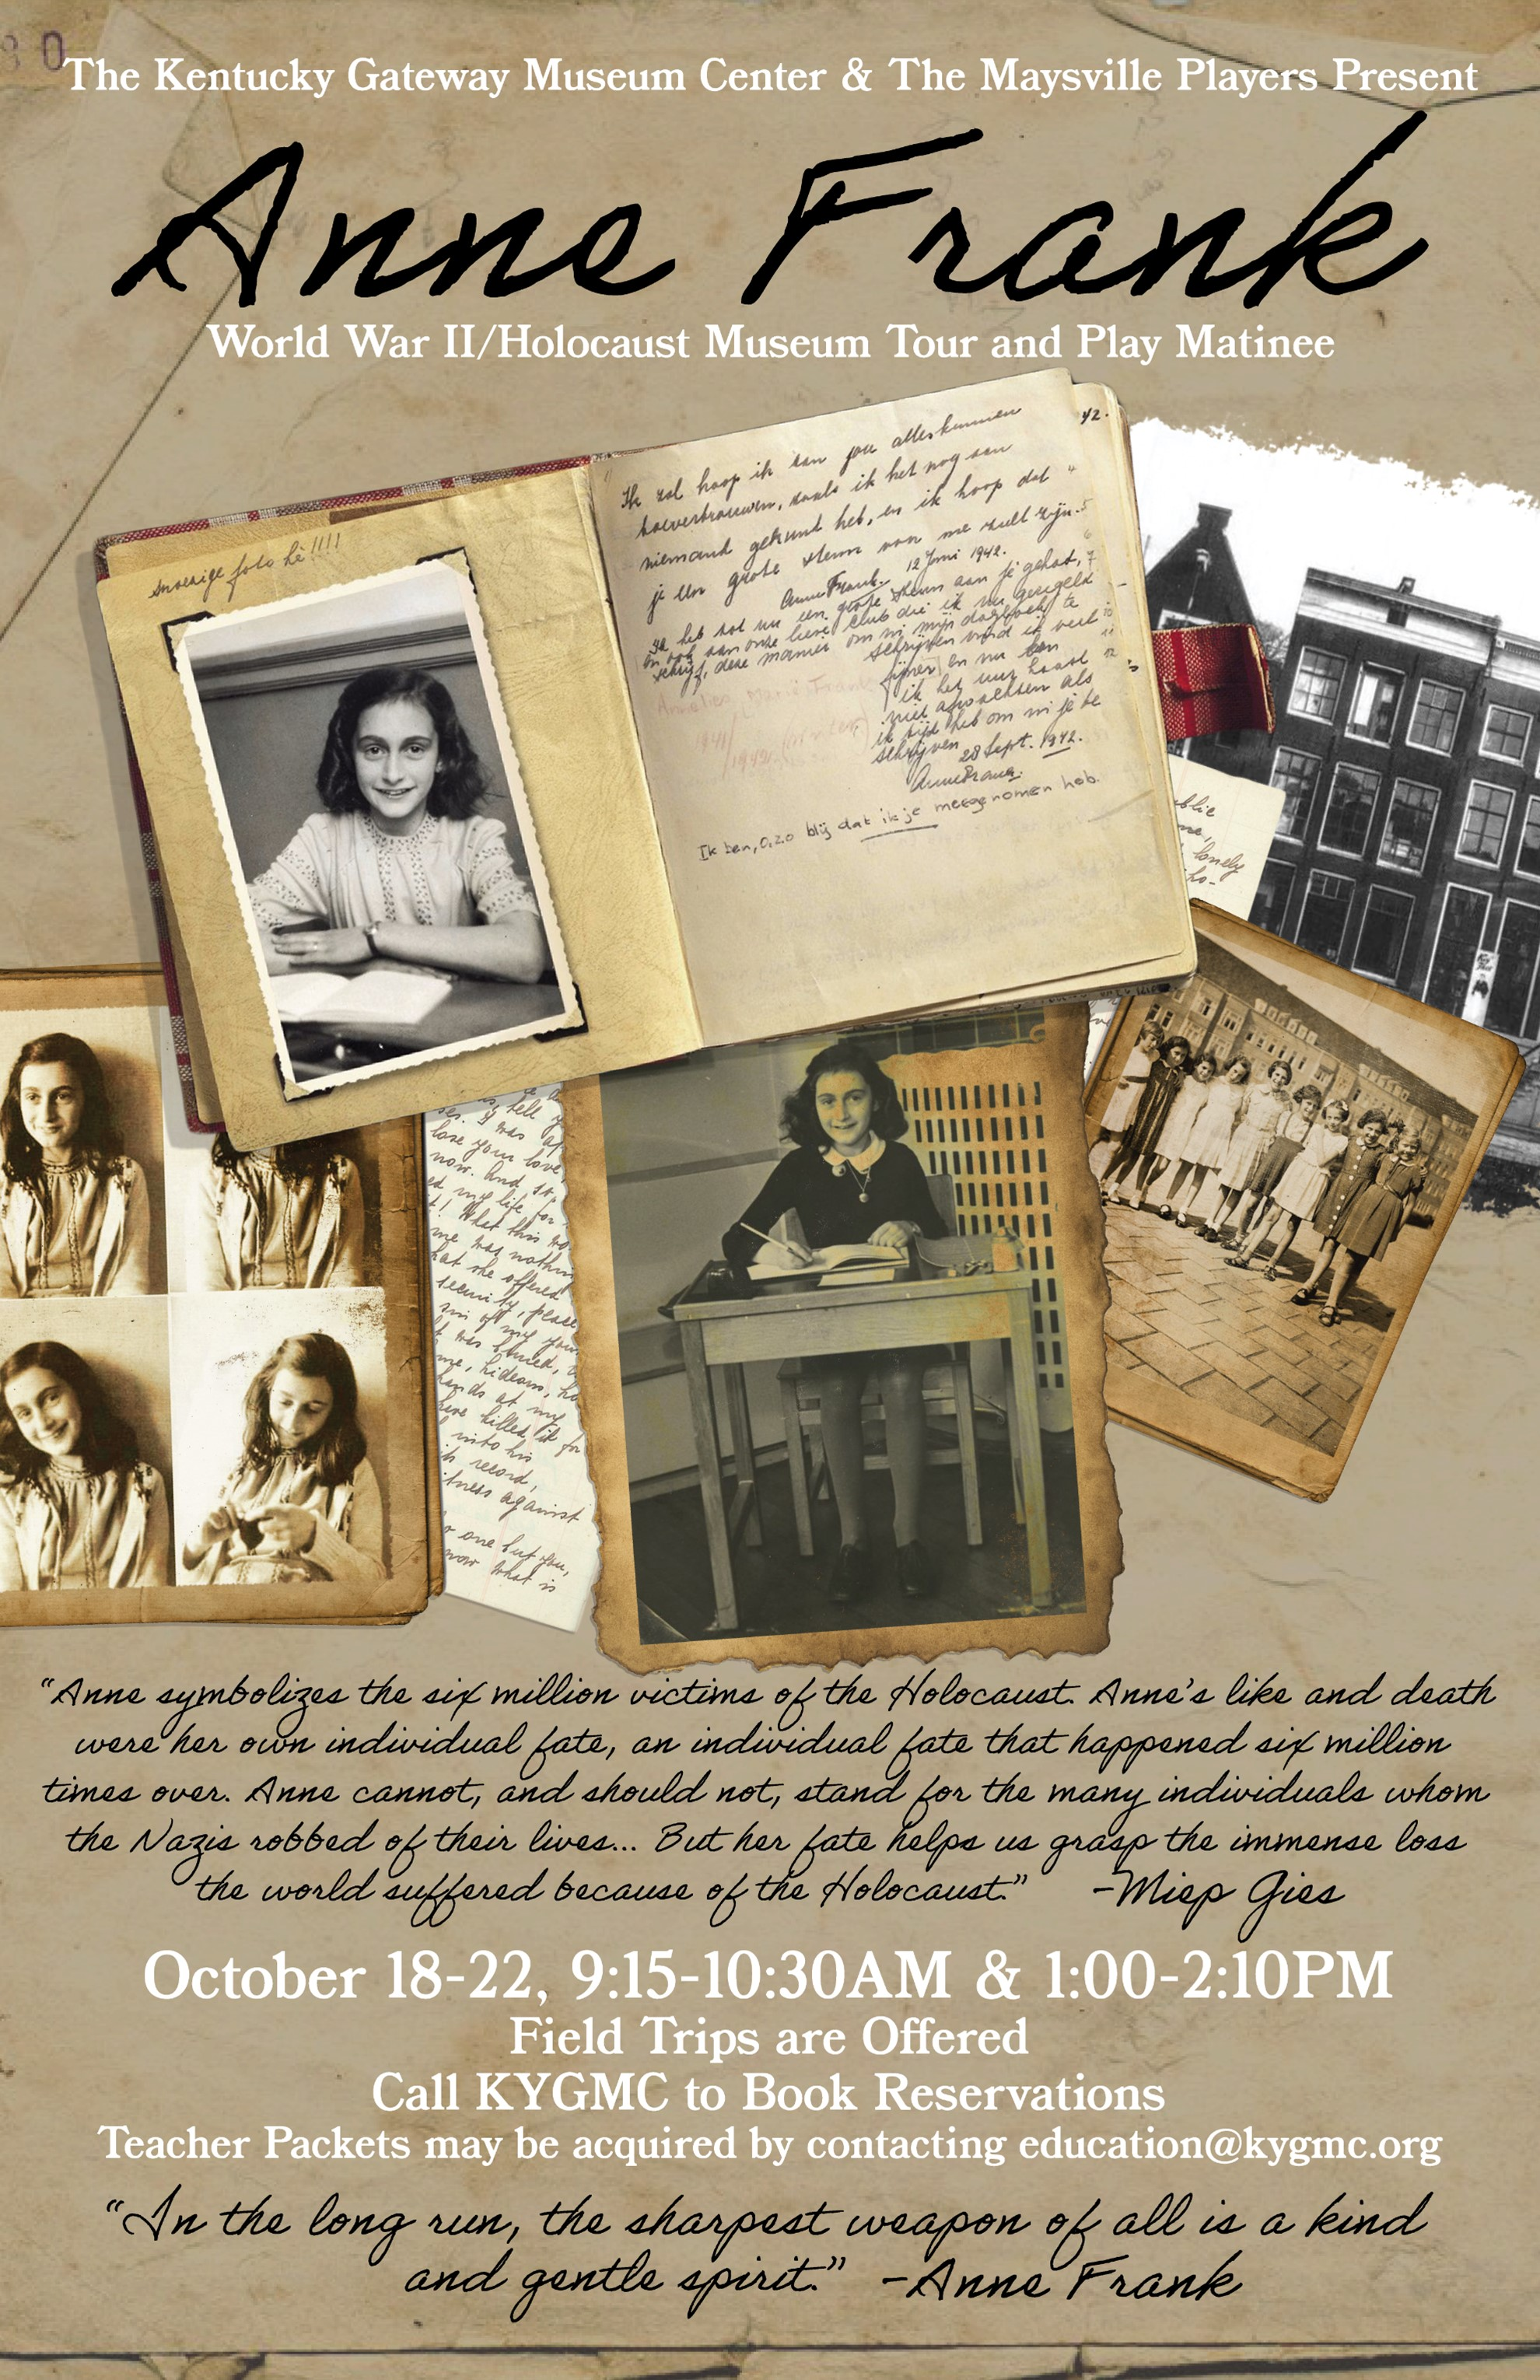 Books and old photographs of Anne Frank.